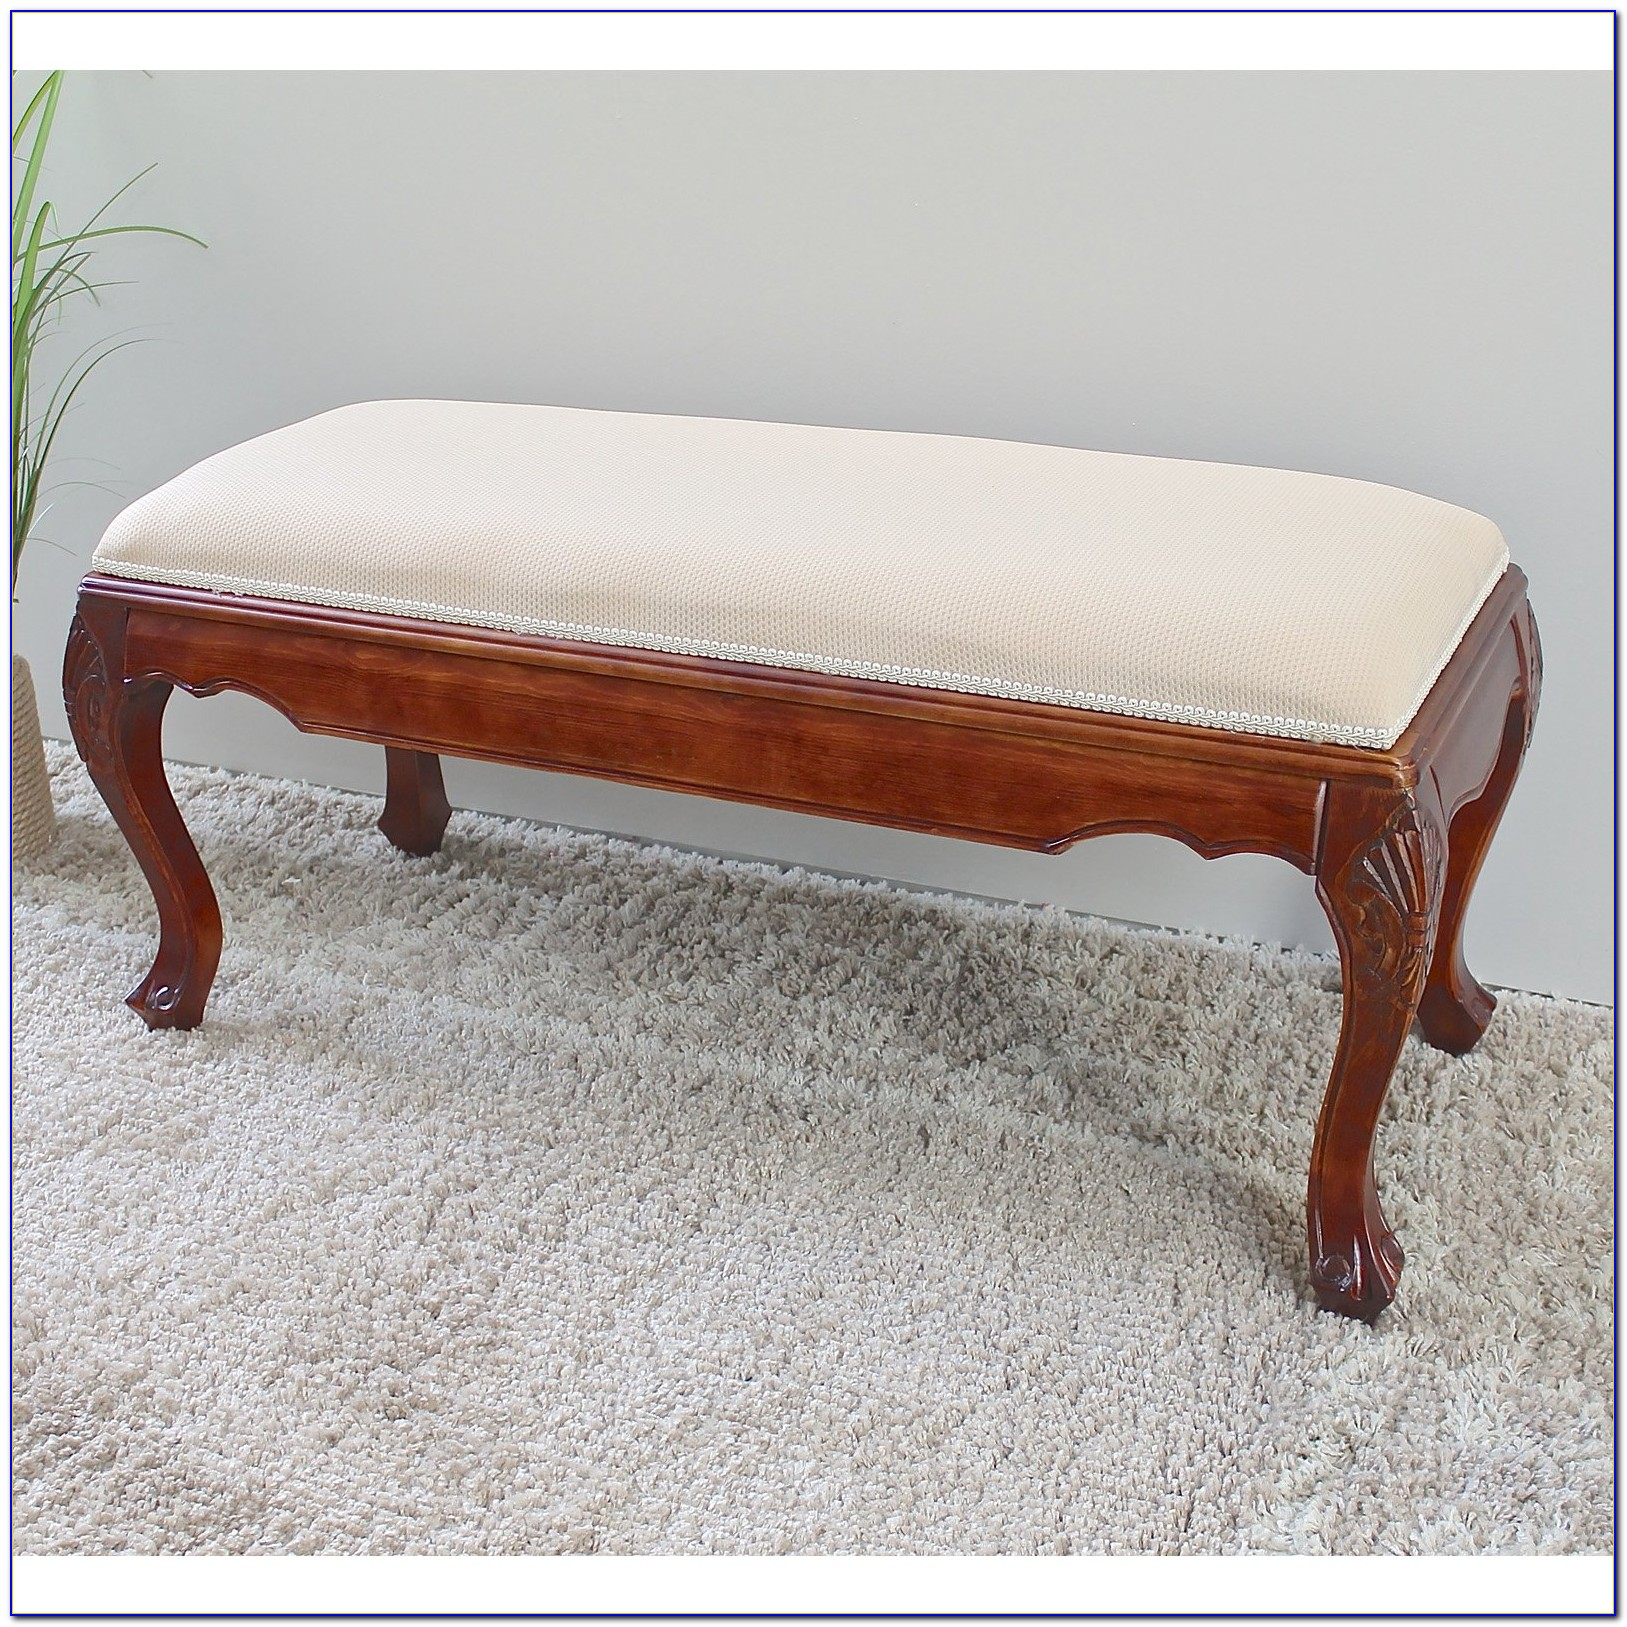 Bedroom Bench For Foot Of Bed